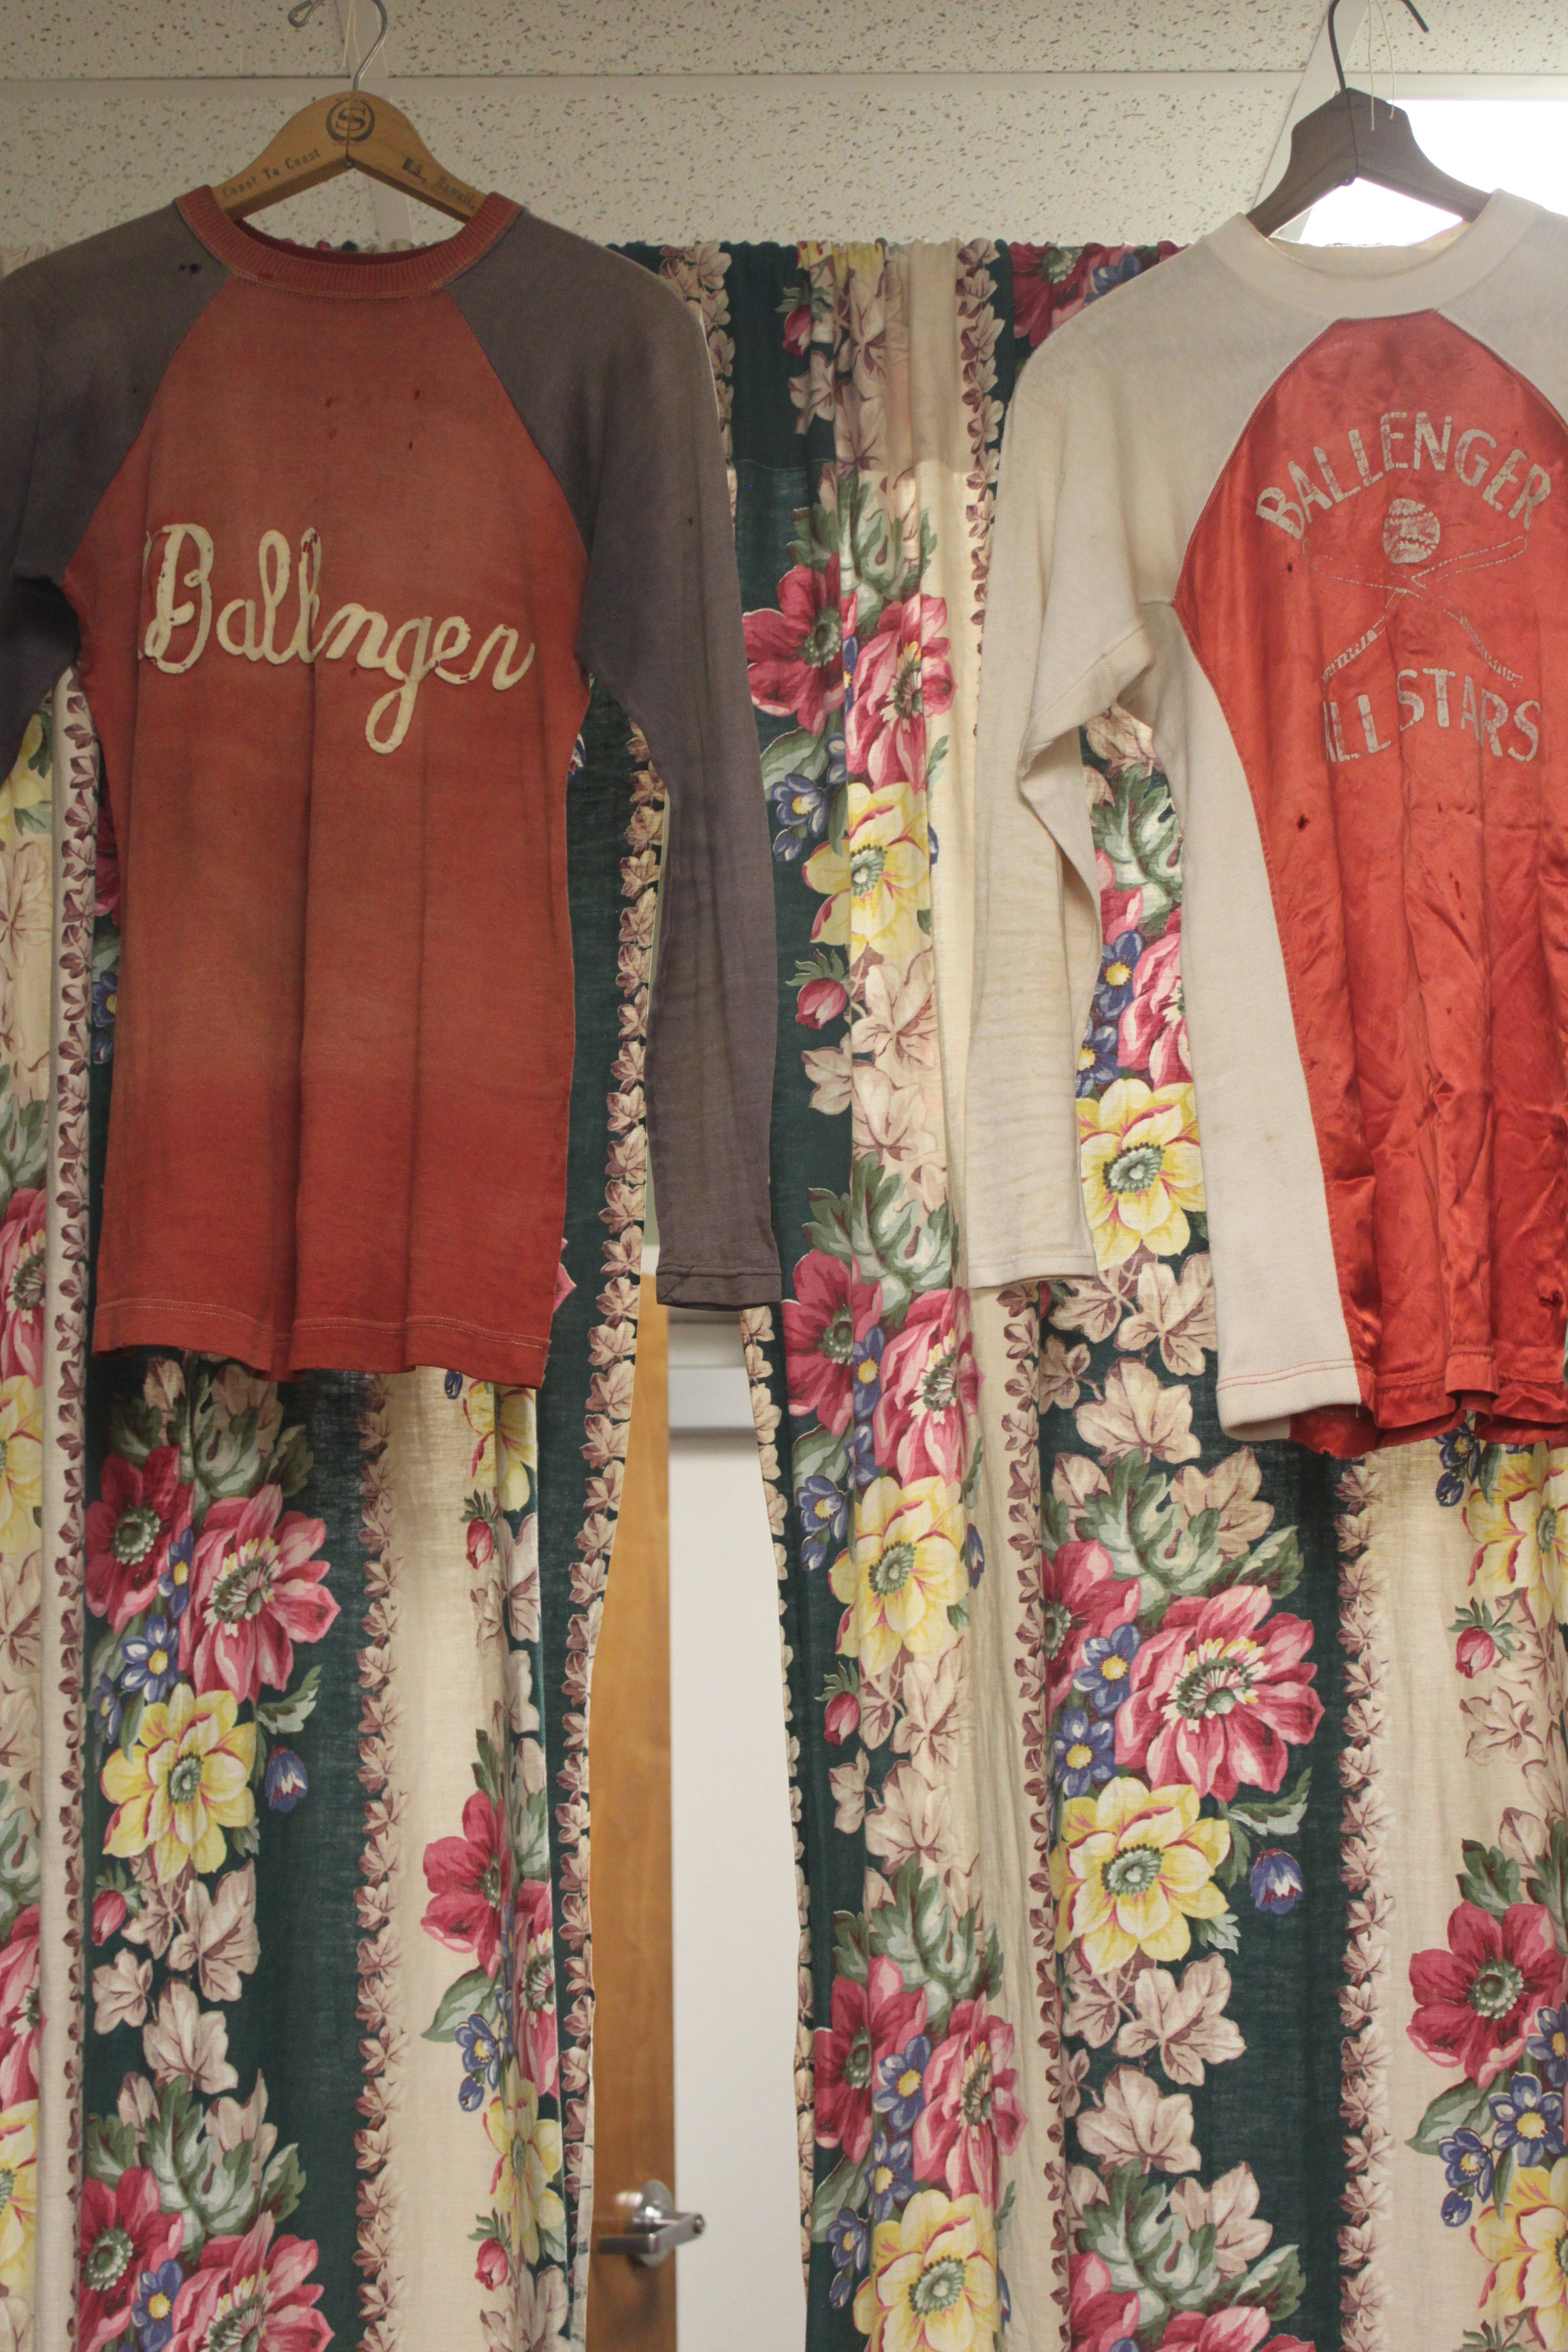 These tops look right at home hanging in front of a floral fabric backdrop.